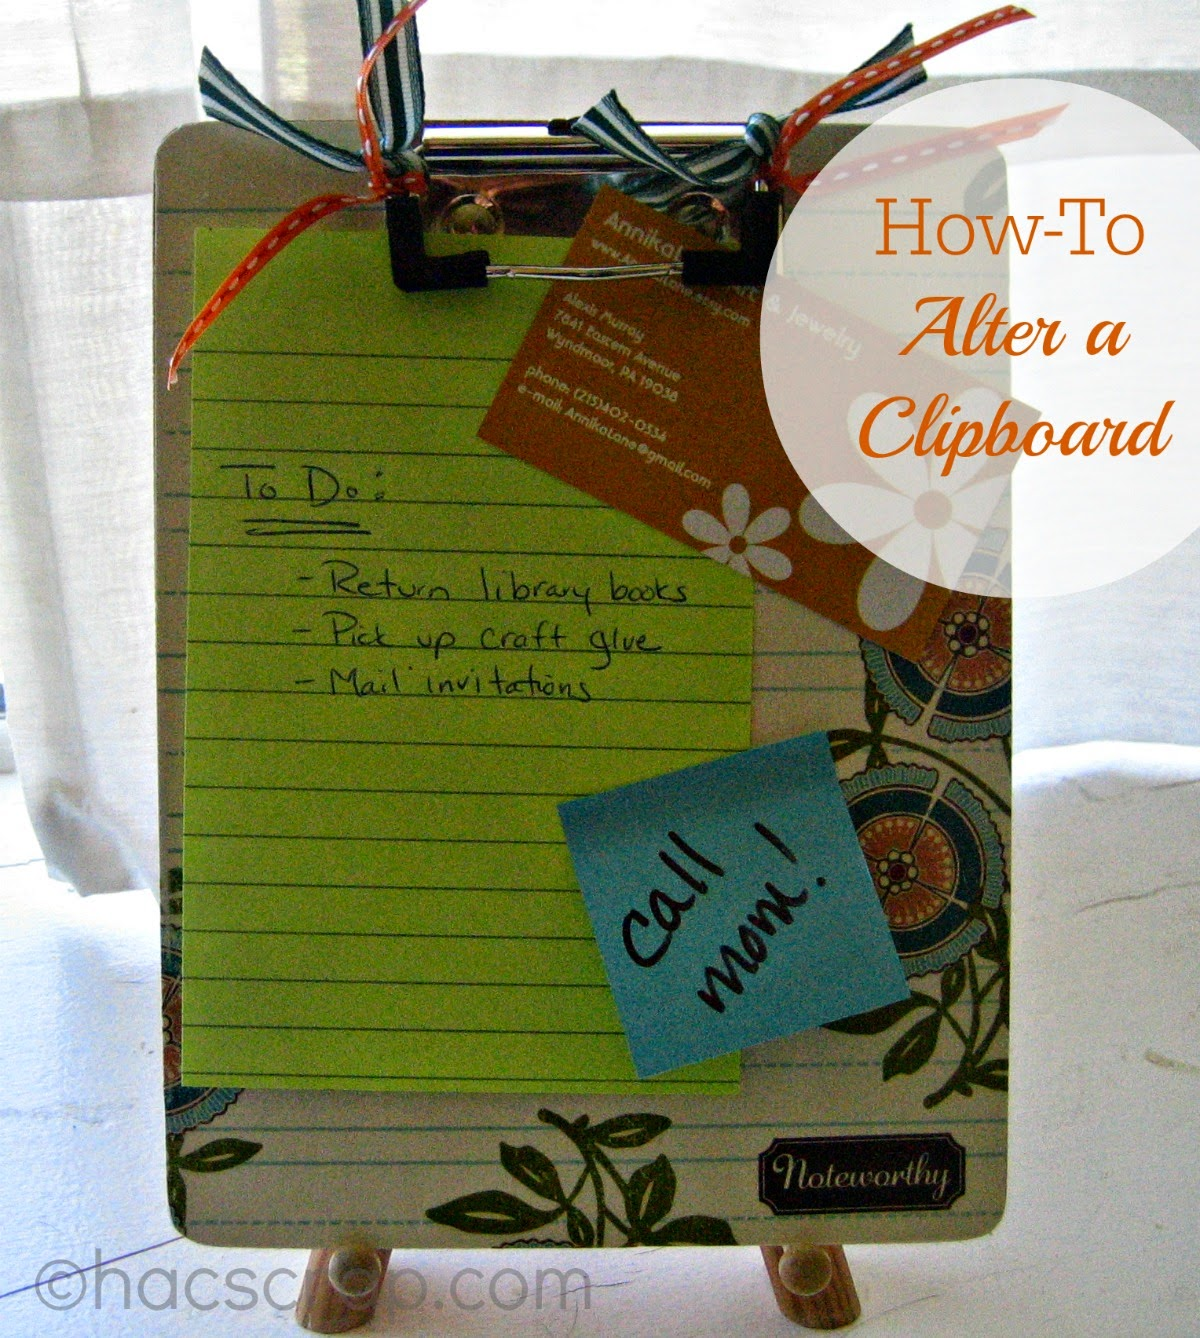 My Scraps | Altered Clipboard